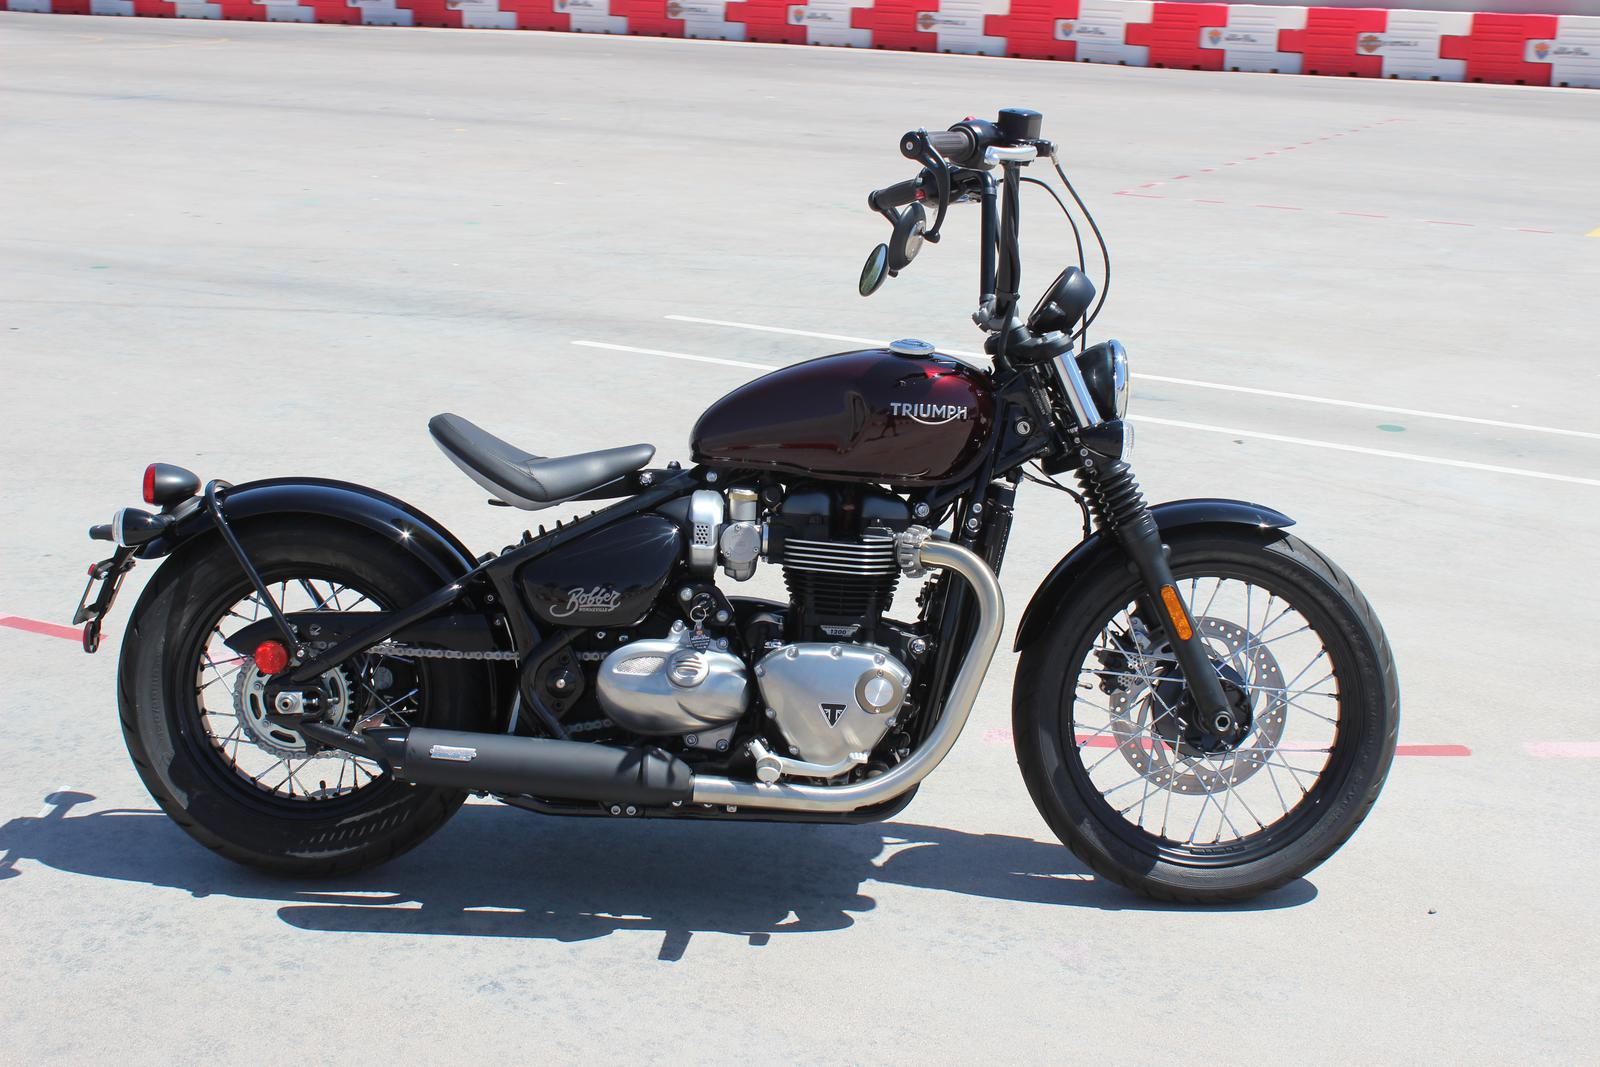 2018 Triumph Bonneville Bobber For Sale In Scottsdale Az Go Az